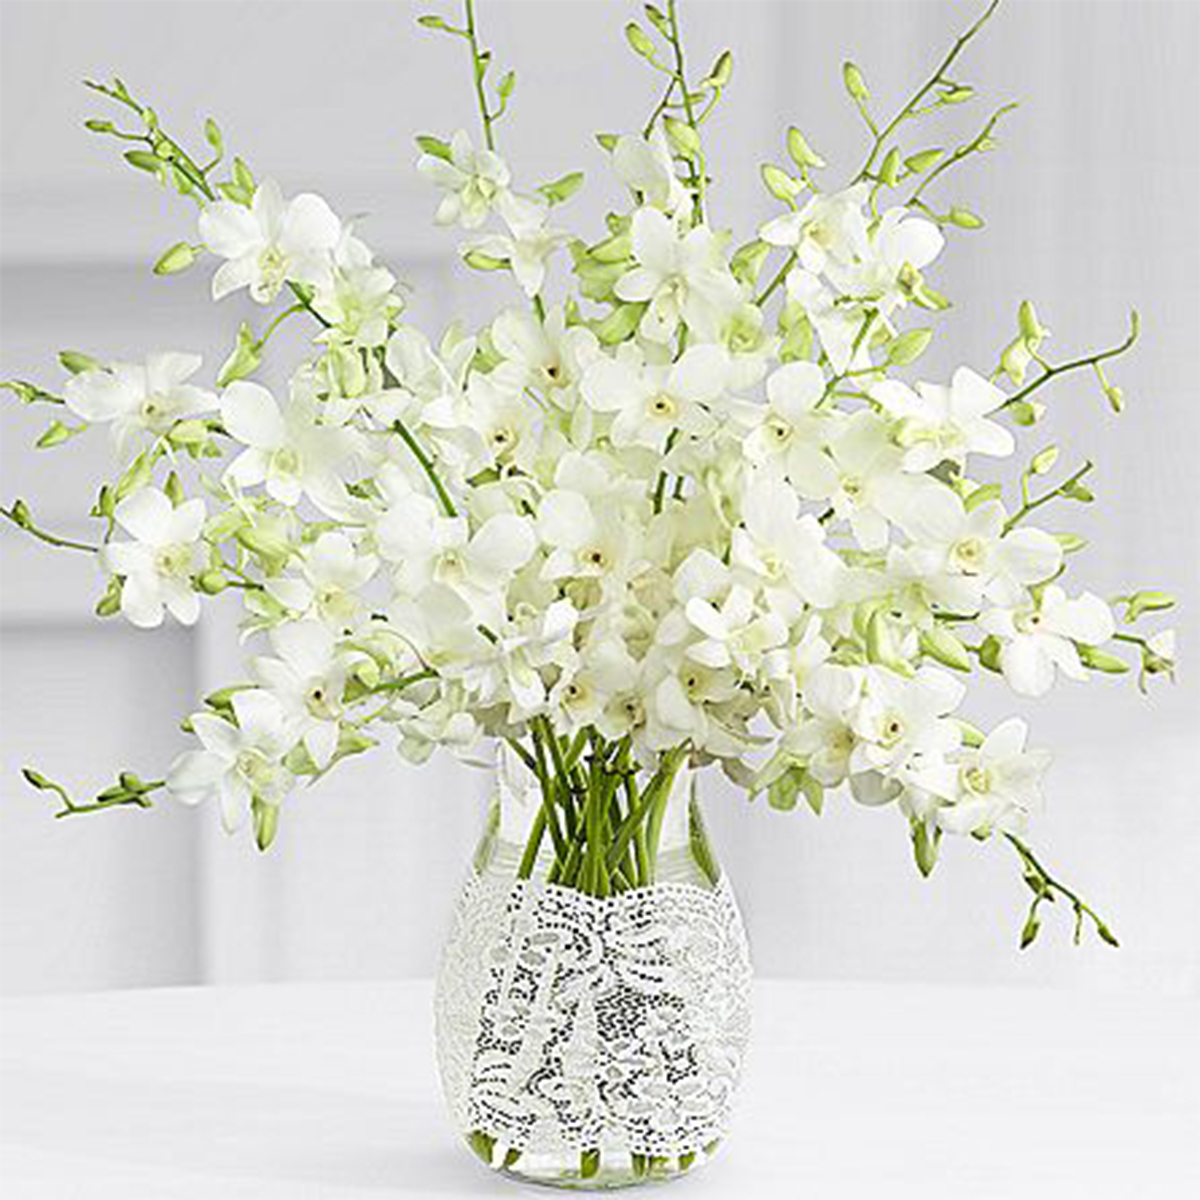 White vase with a lace design holding white flowers photo